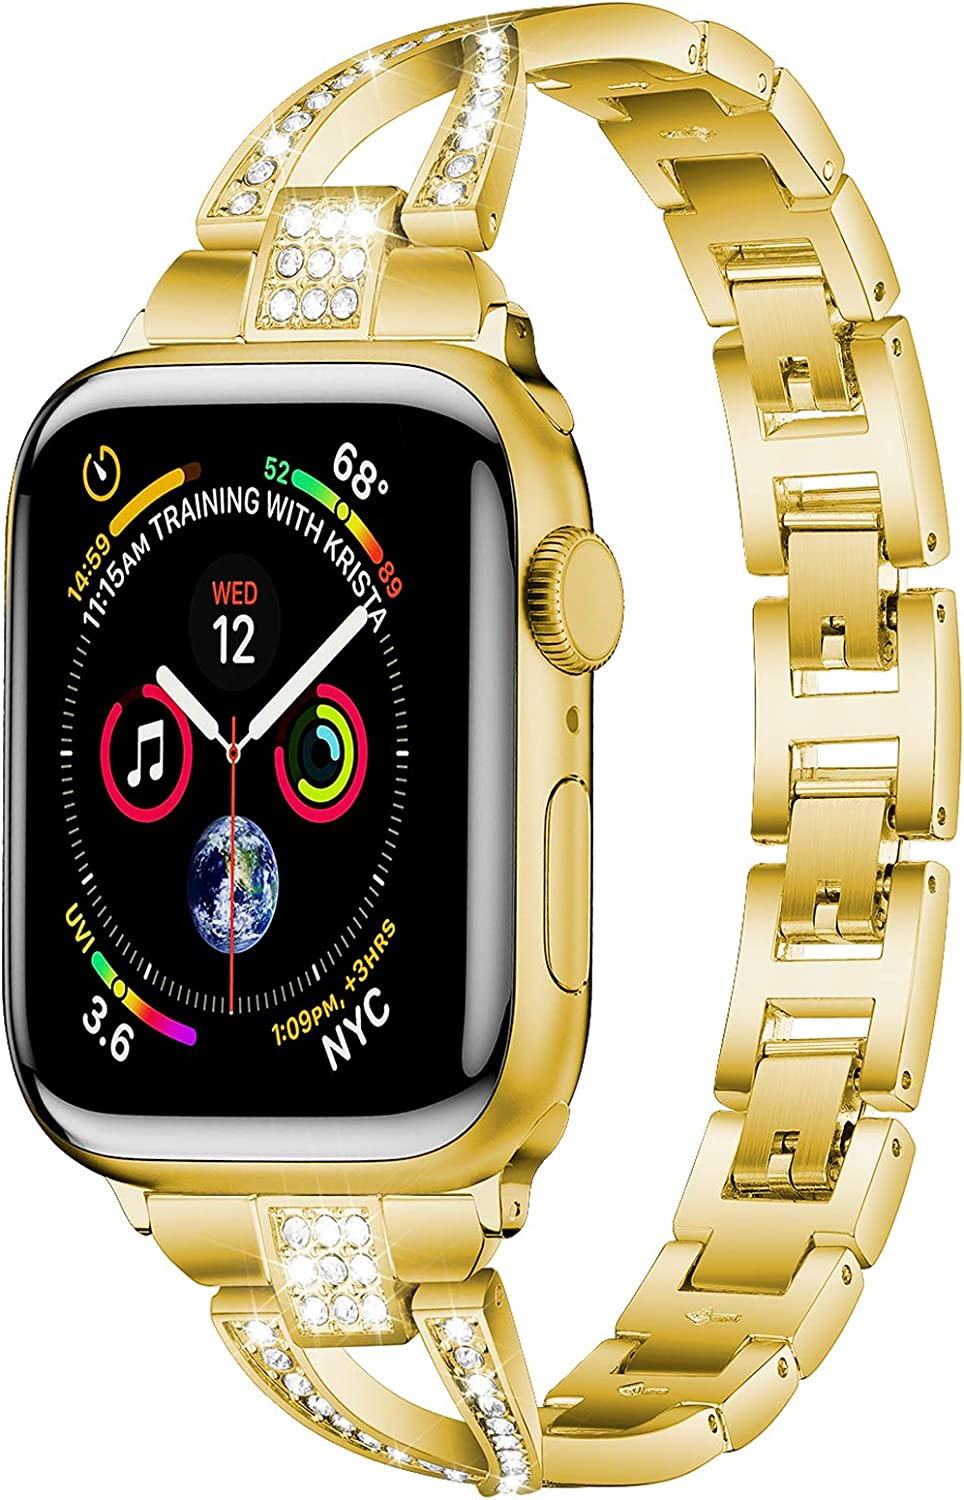 PEIYUI High-end Stainless Steel Metal Band for Apple Watch 42mm 44mm, Women Strap Replacement Link Bracelet Band Compatible with Apple Watch Series 6 & 5 & SE iWatch Series 4/3/2/1 (Golden, 42mm-44mm)